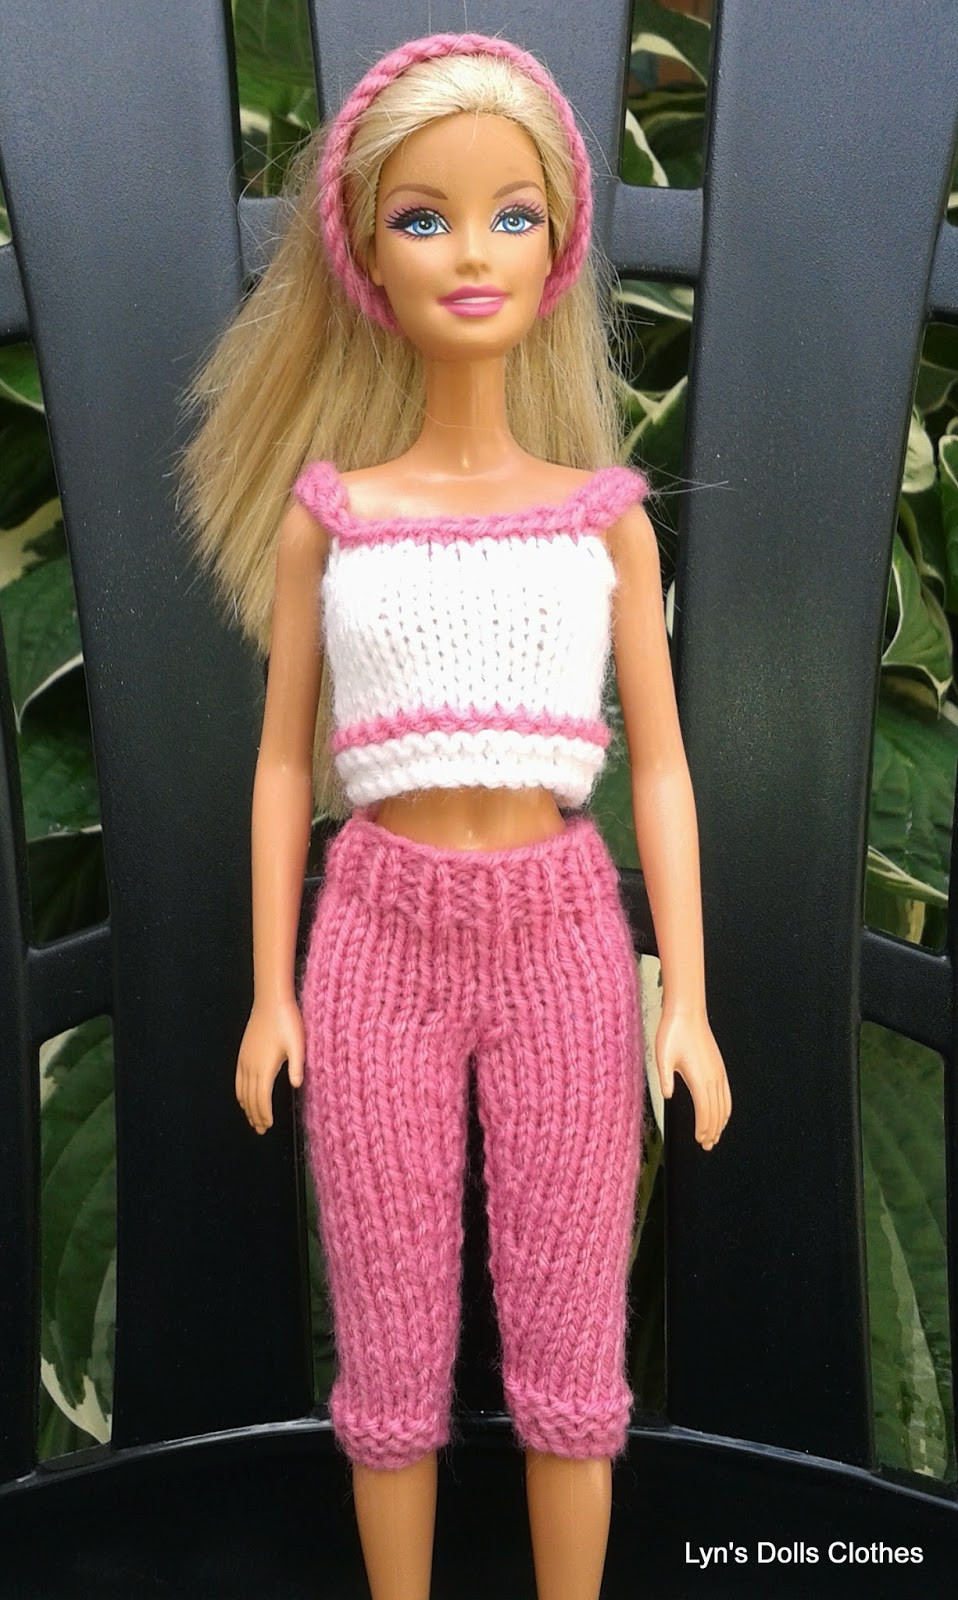 Luxury Linmary Knits Barbie Knitted Capri Pants and Cropped top Barbie Doll Patterns Of Superb 40 Pics Barbie Doll Patterns